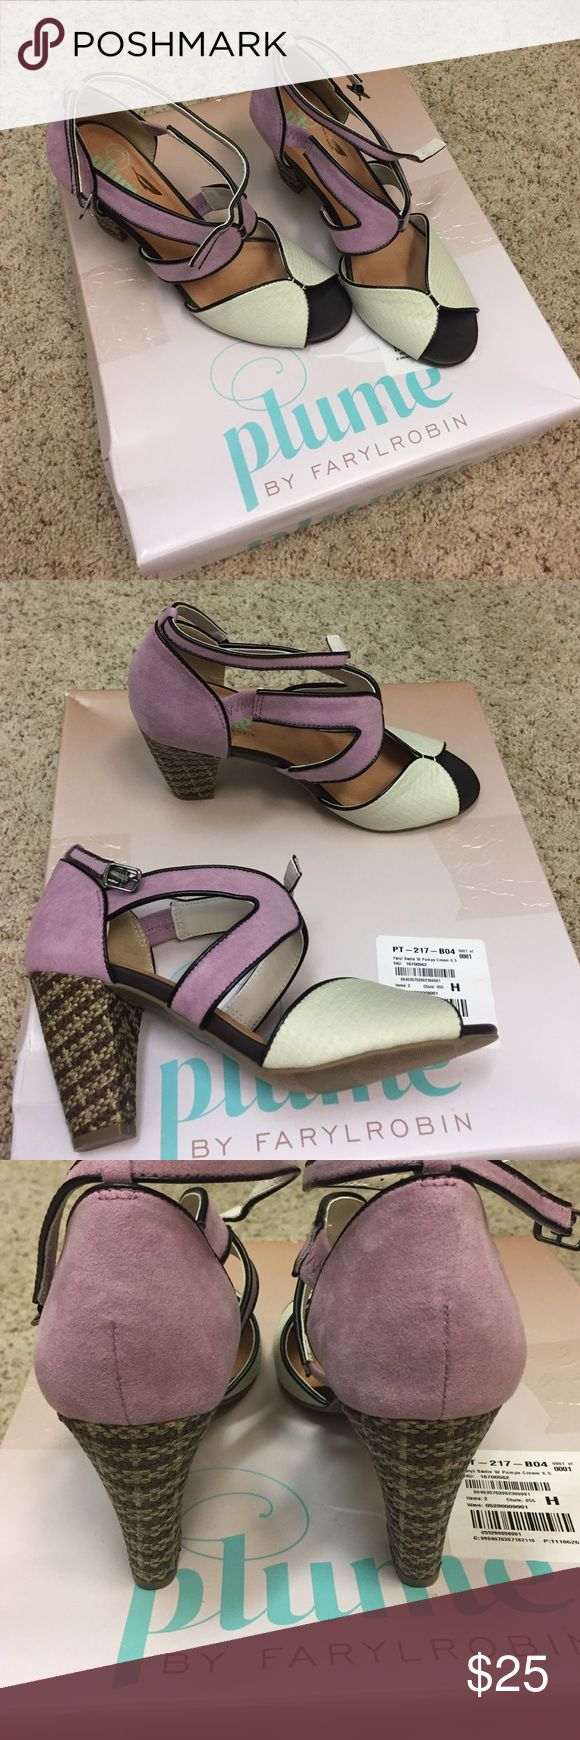 Plume by Farylrobin Sadie Cream Pumps 6.5 These strappy shoes pair an 80s' peep toe with a 1920s'-style ankle buckle with a unique and modern color palette. Featuring mauve, soft brown and cream tones. 6.5 NWT Never worn in original box. Farylrobin Shoes Sandals